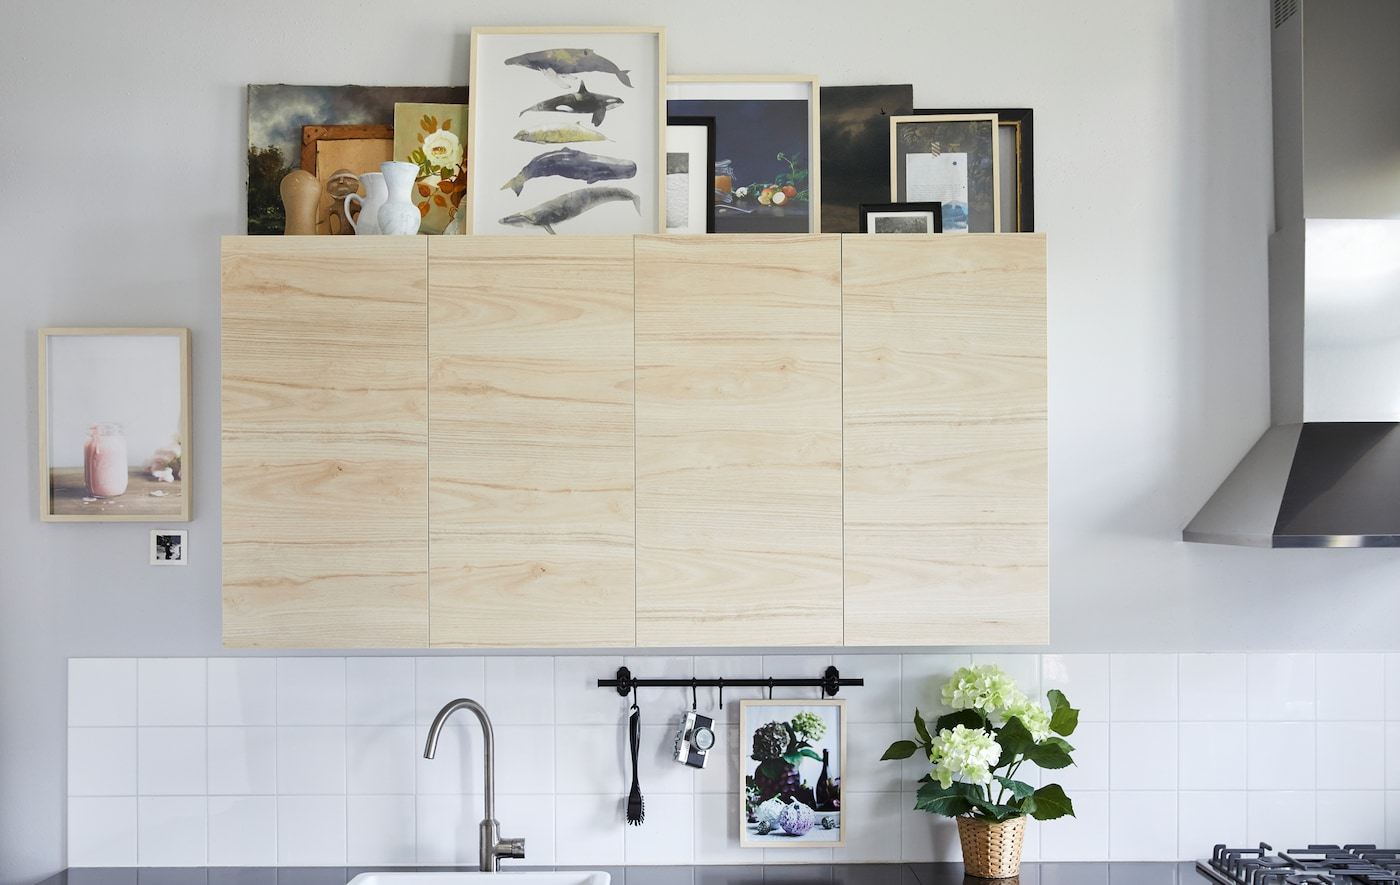 Picture frames and vases arranged on the top of birch kitchen cabinets in a white kitchen with tiled splashback.